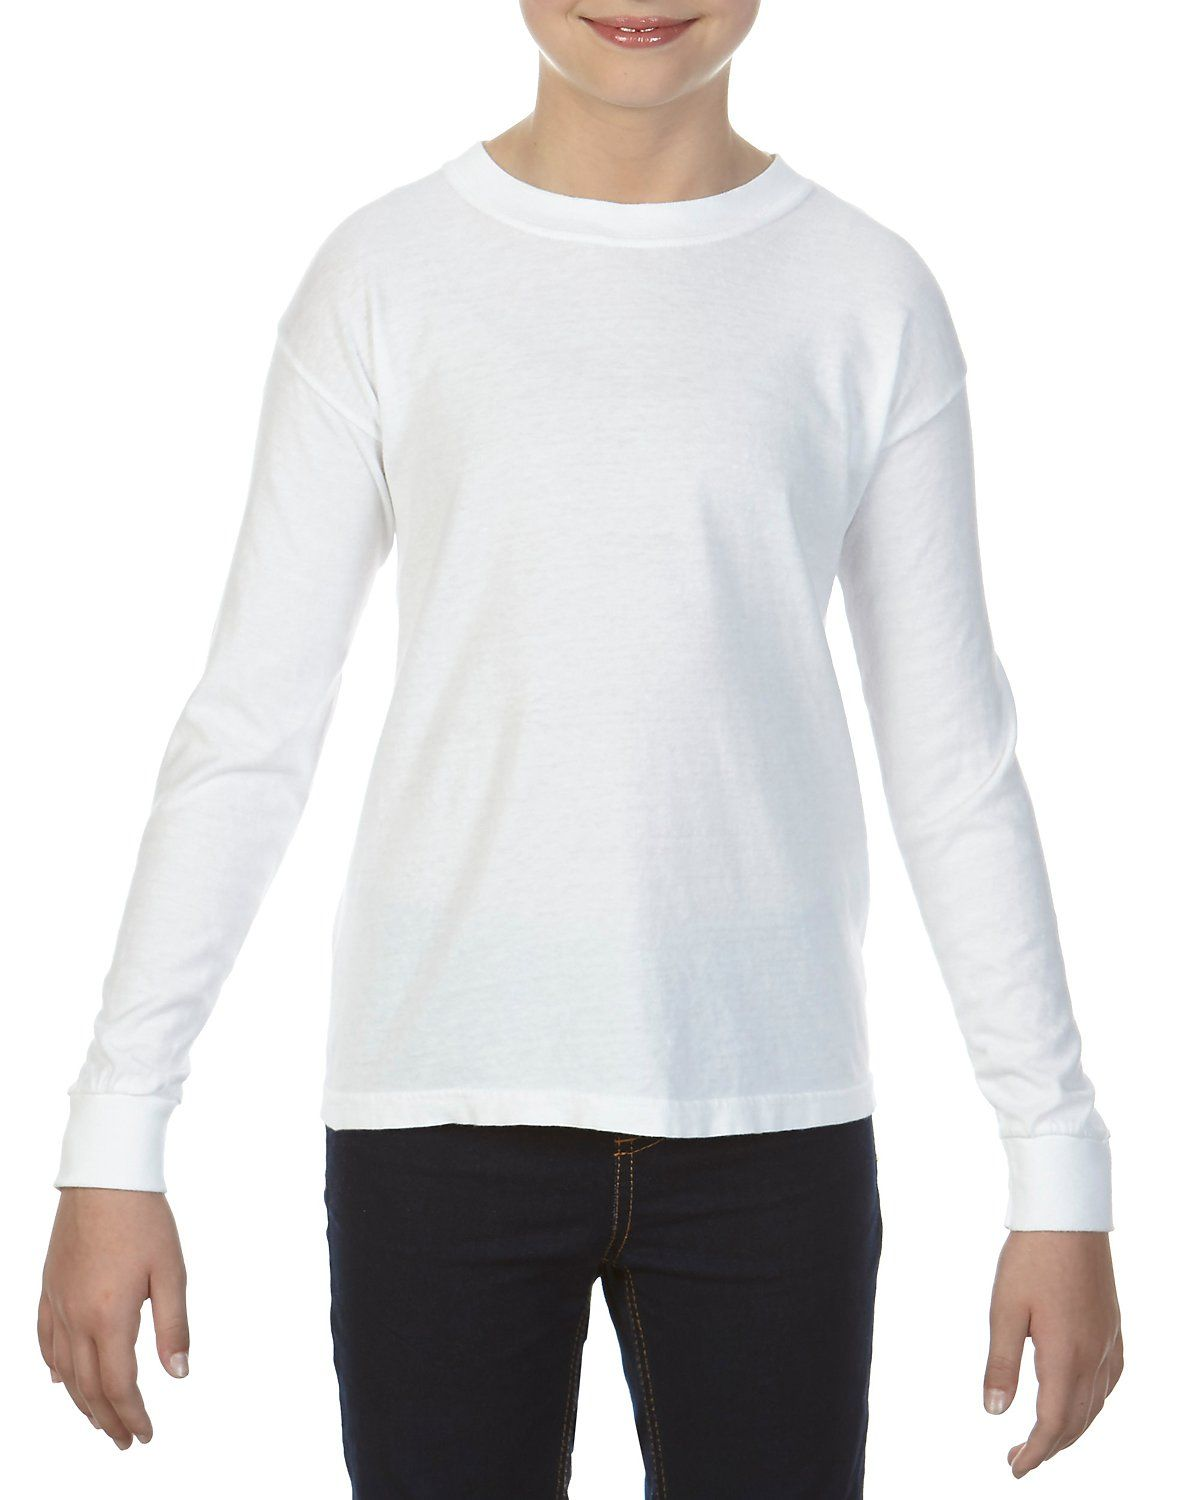 Buy Comfort Colors C3483 Youth 54 Oz Garment Dyed Long Sleeve T Shirt